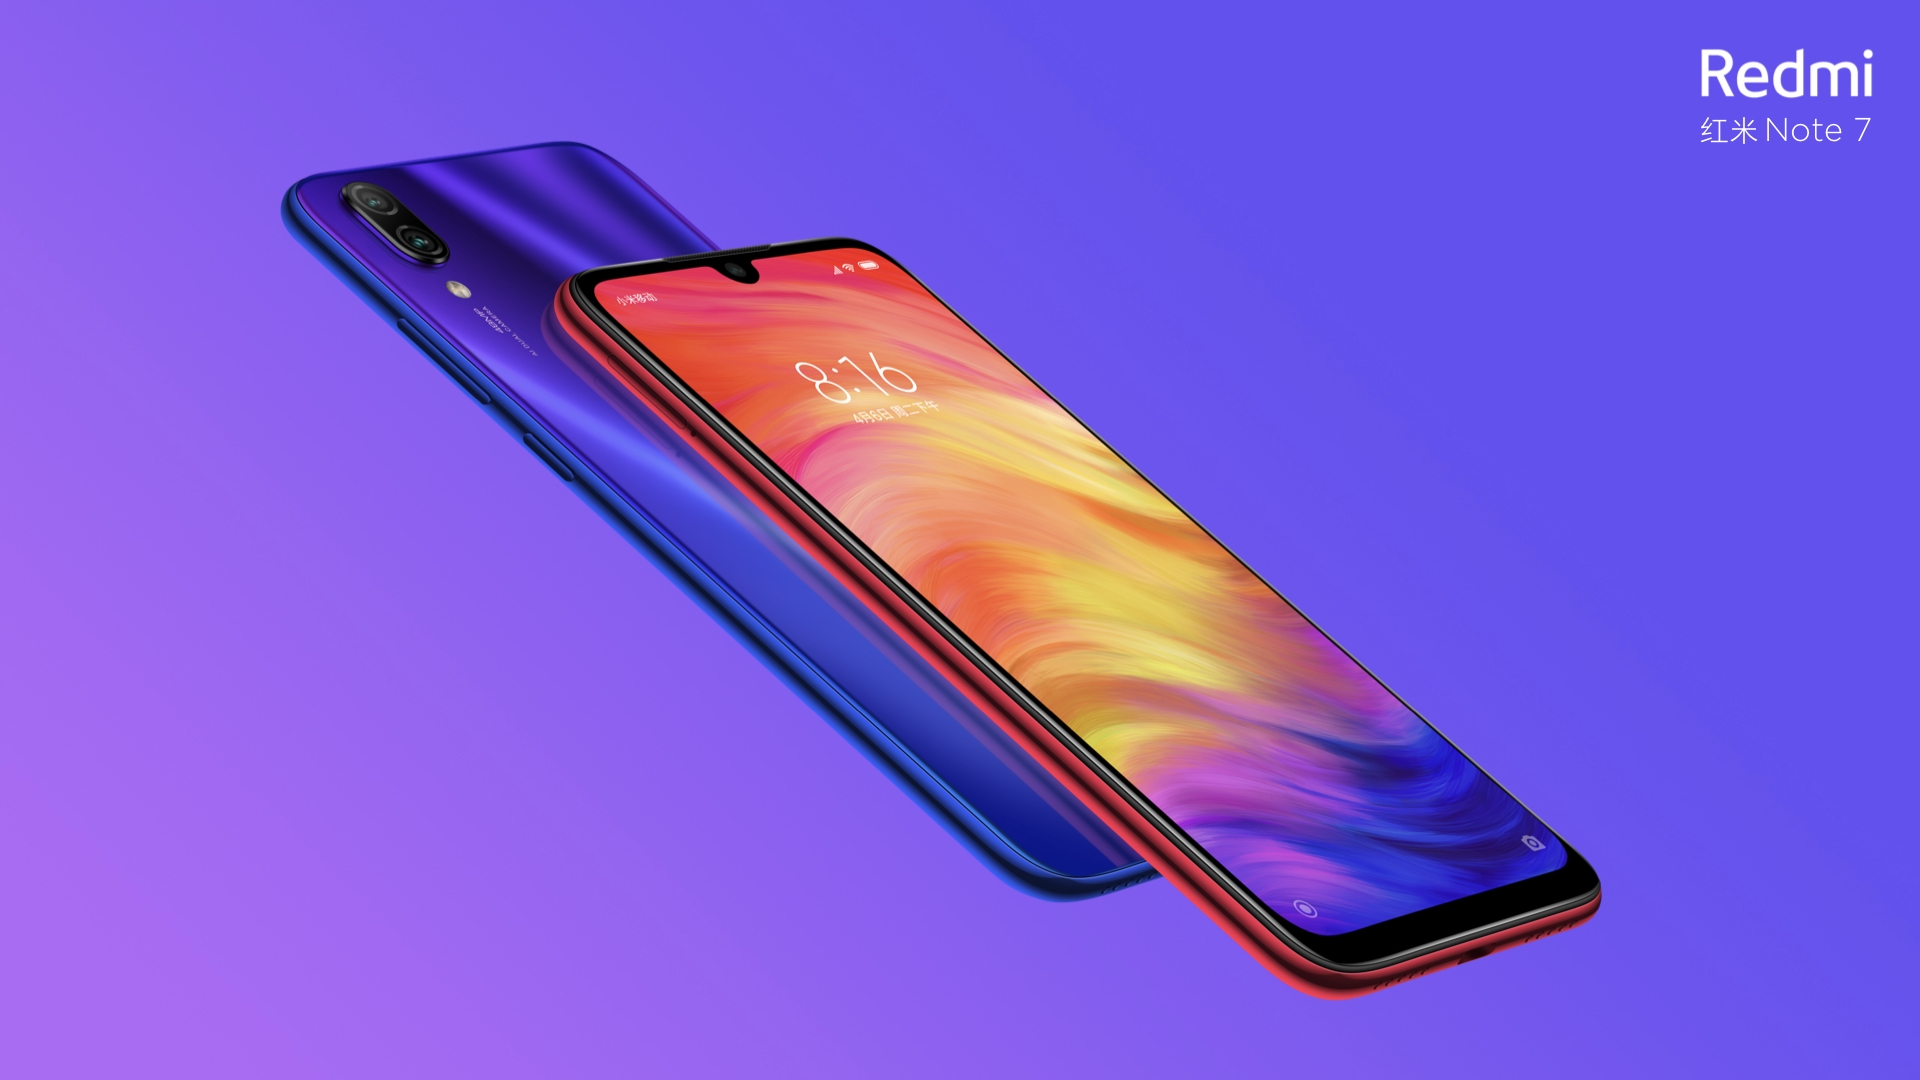 Image result for Redmi Note 7 hd